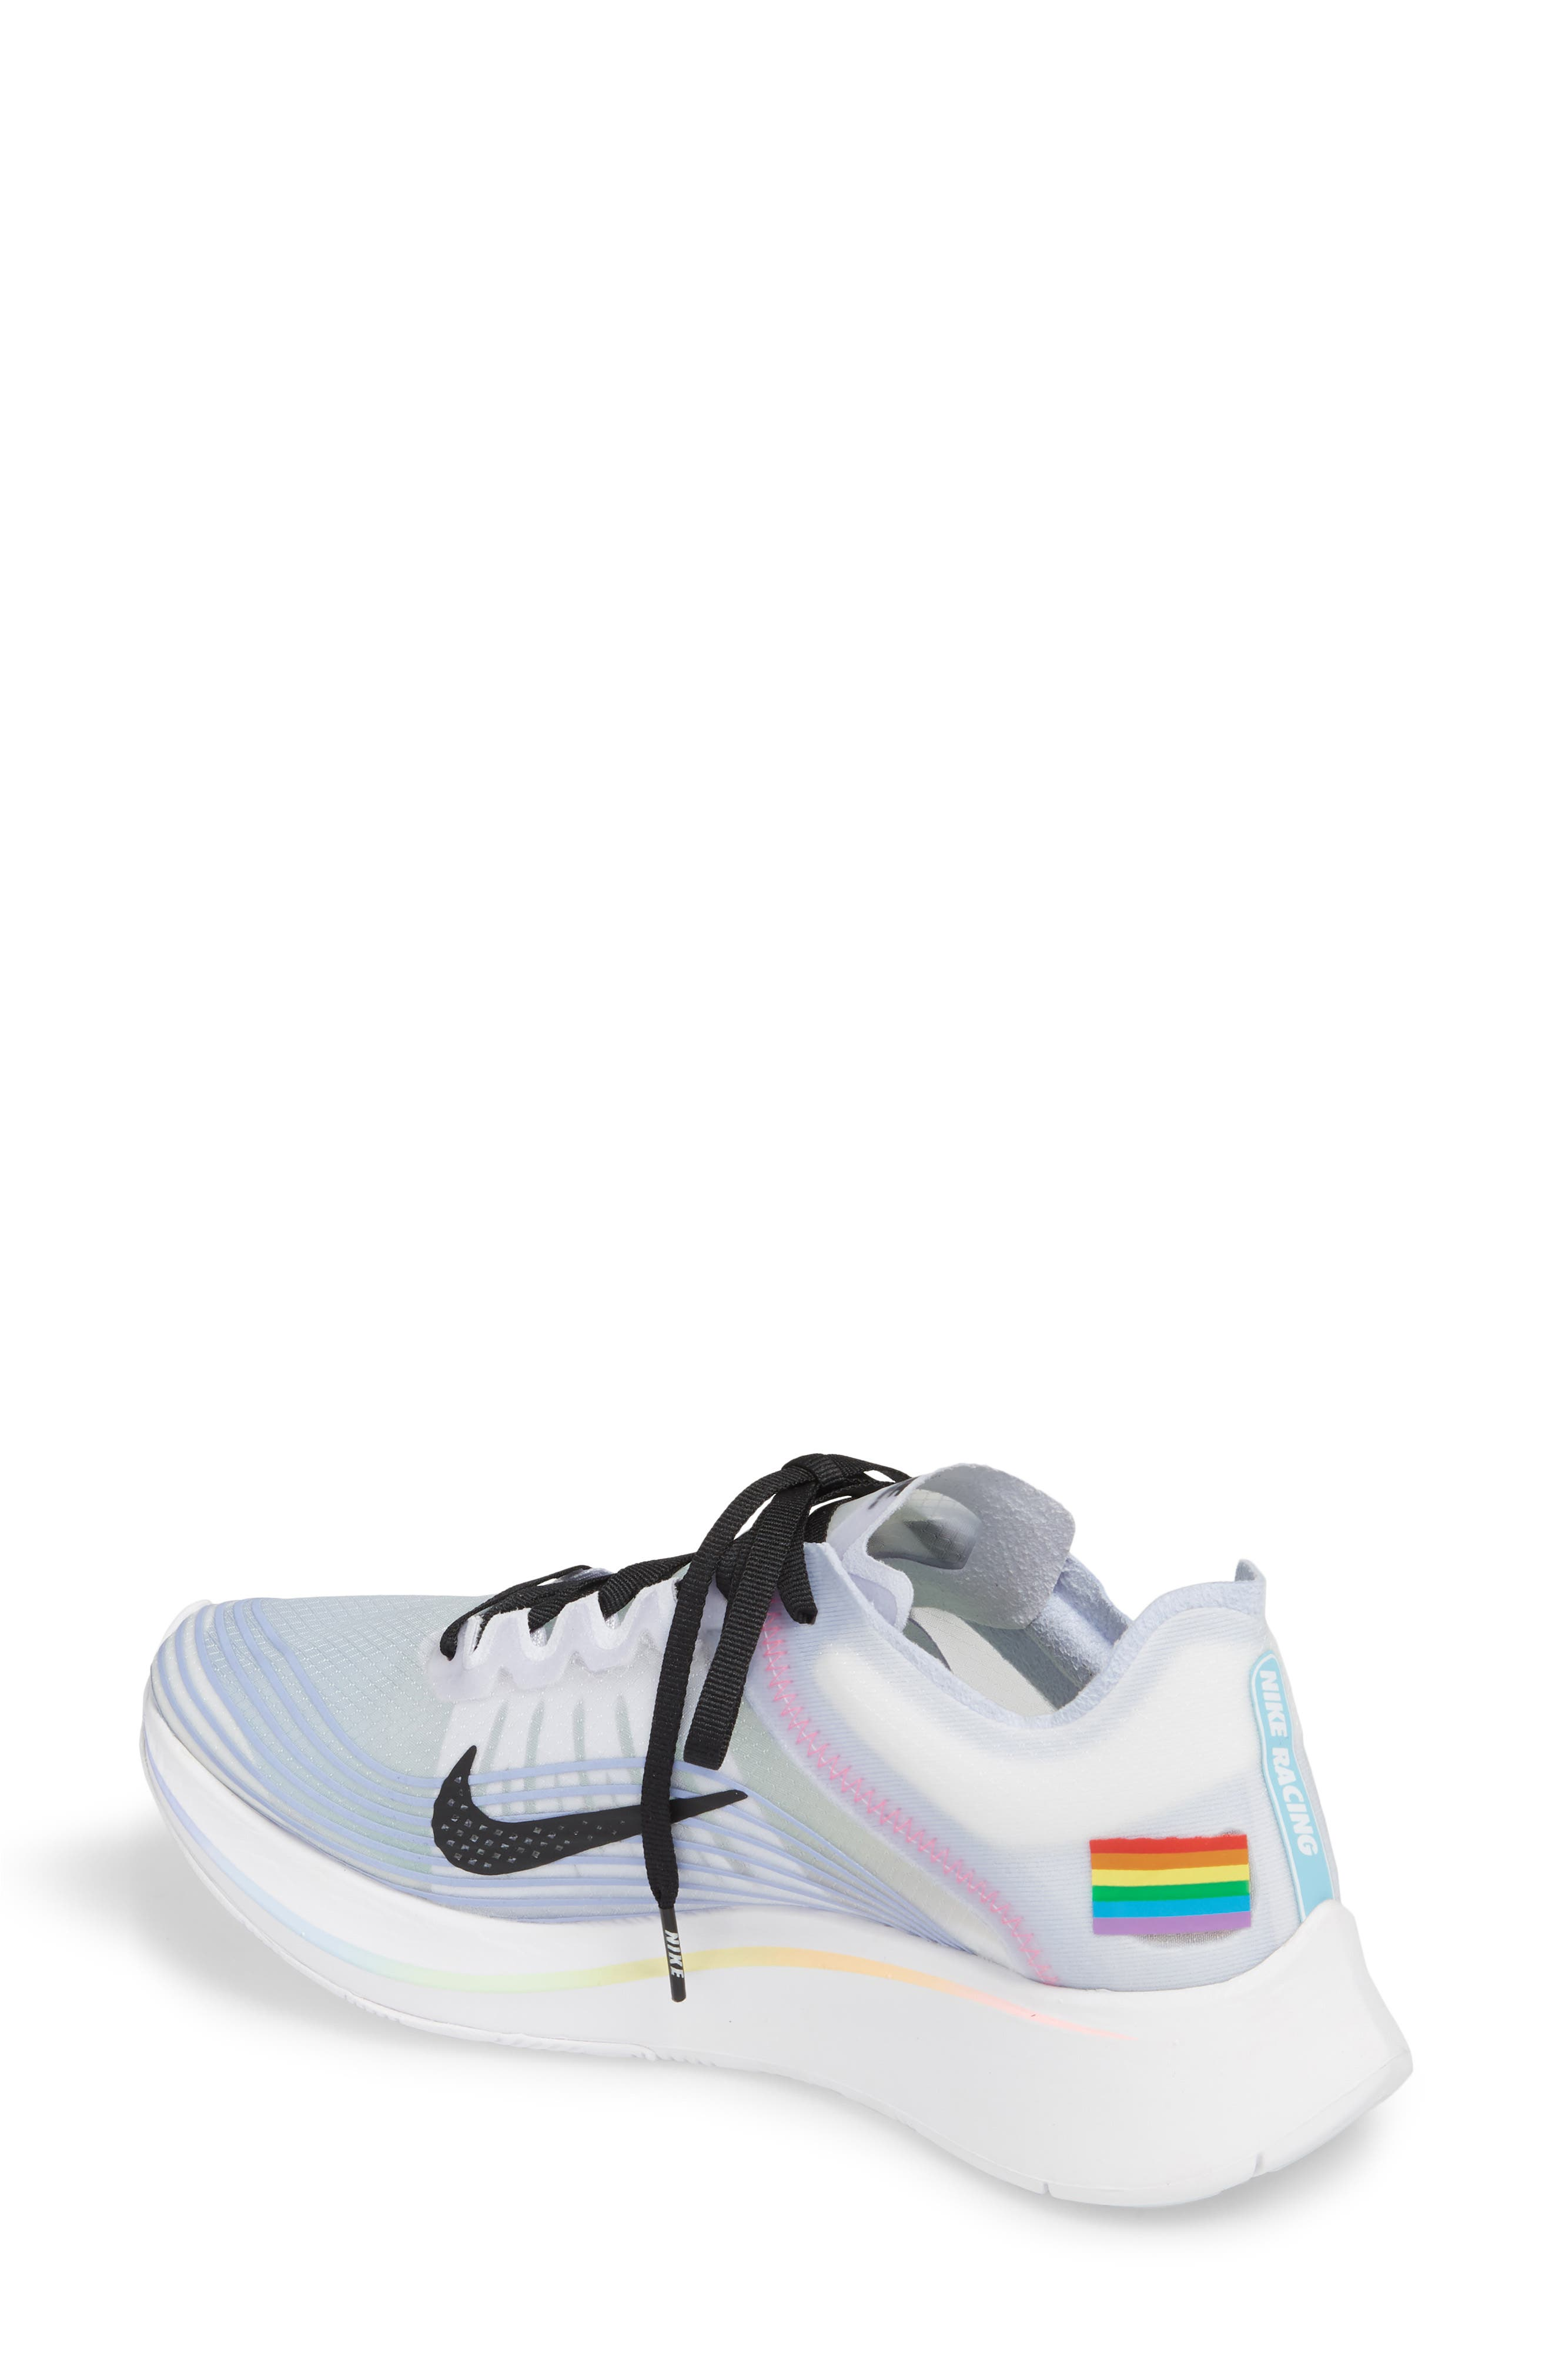 Nordstrom x Nike Zoom Fly BETRUE Running Shoe,                             Alternate thumbnail 2, color,                             105